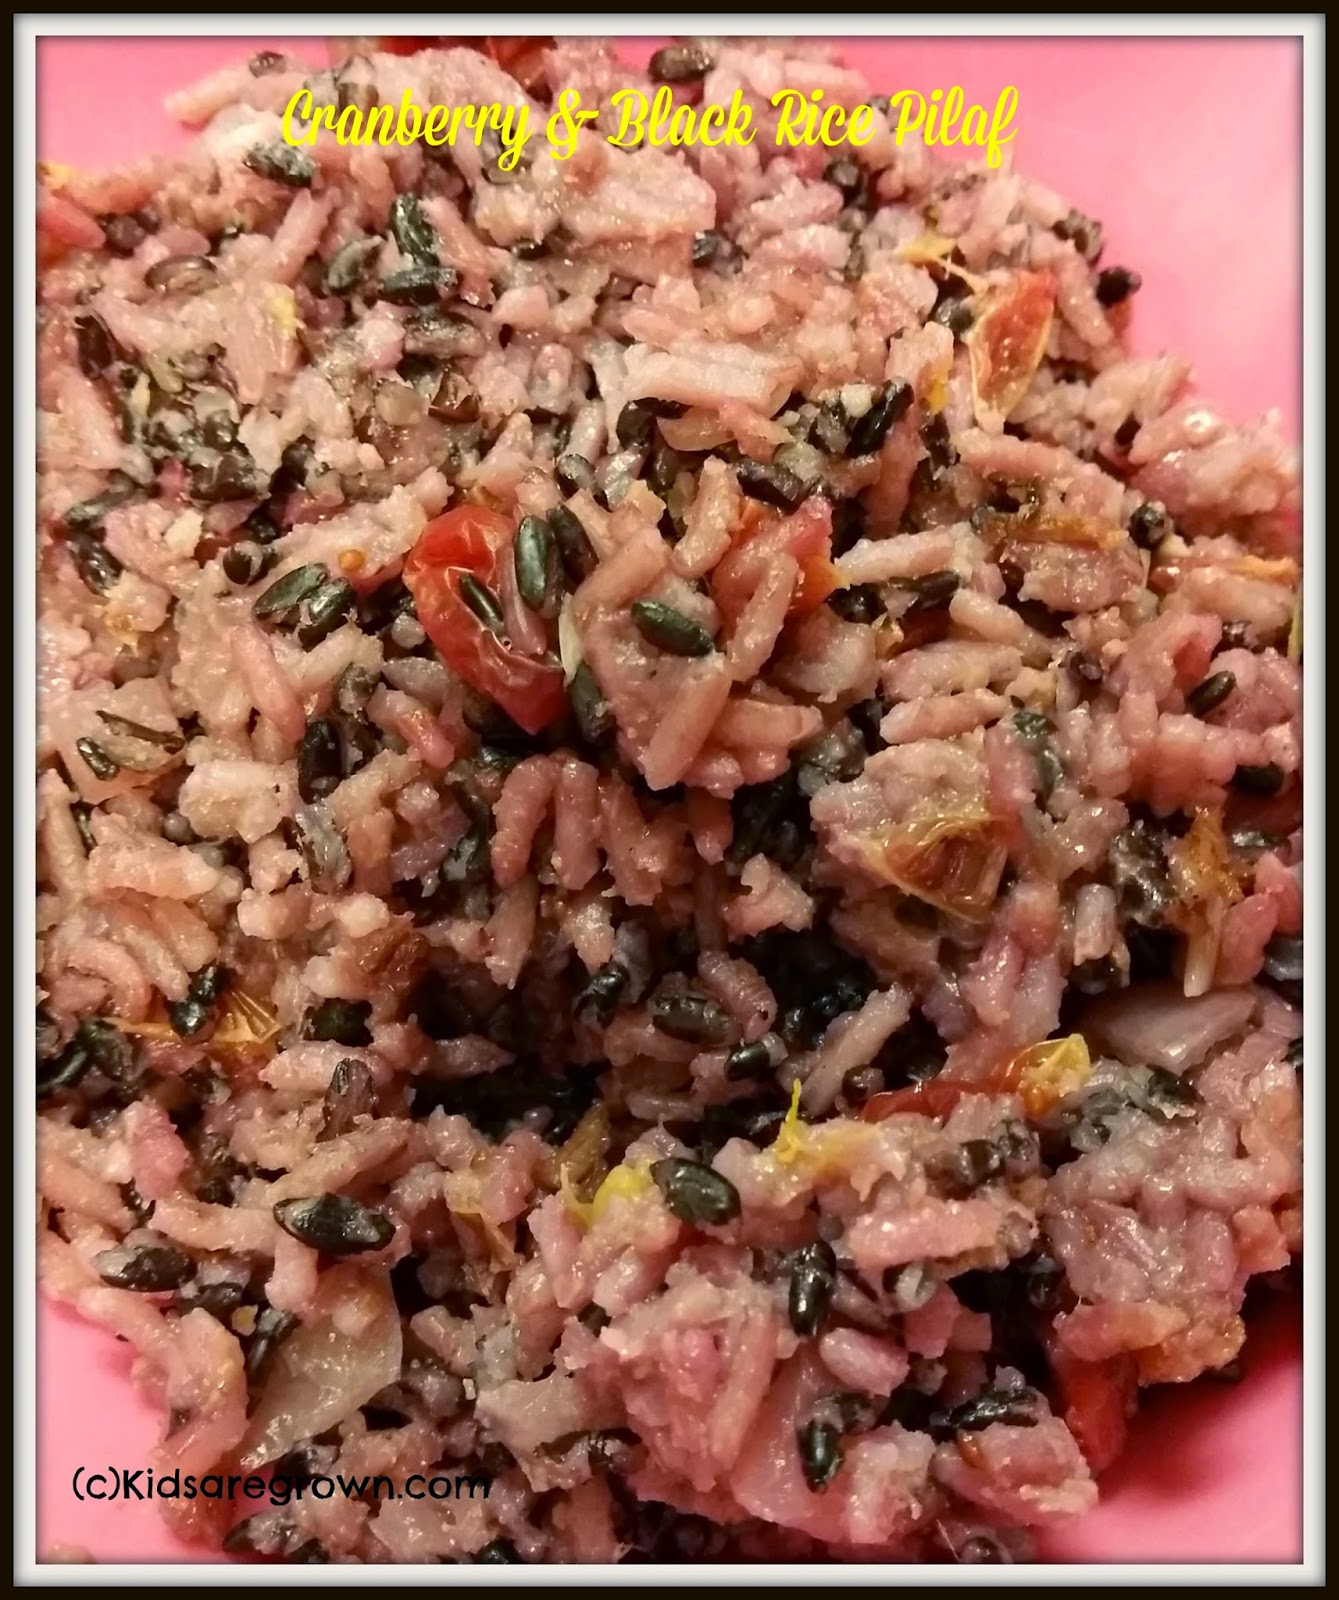 Cranberry & Black Rice Pilaf